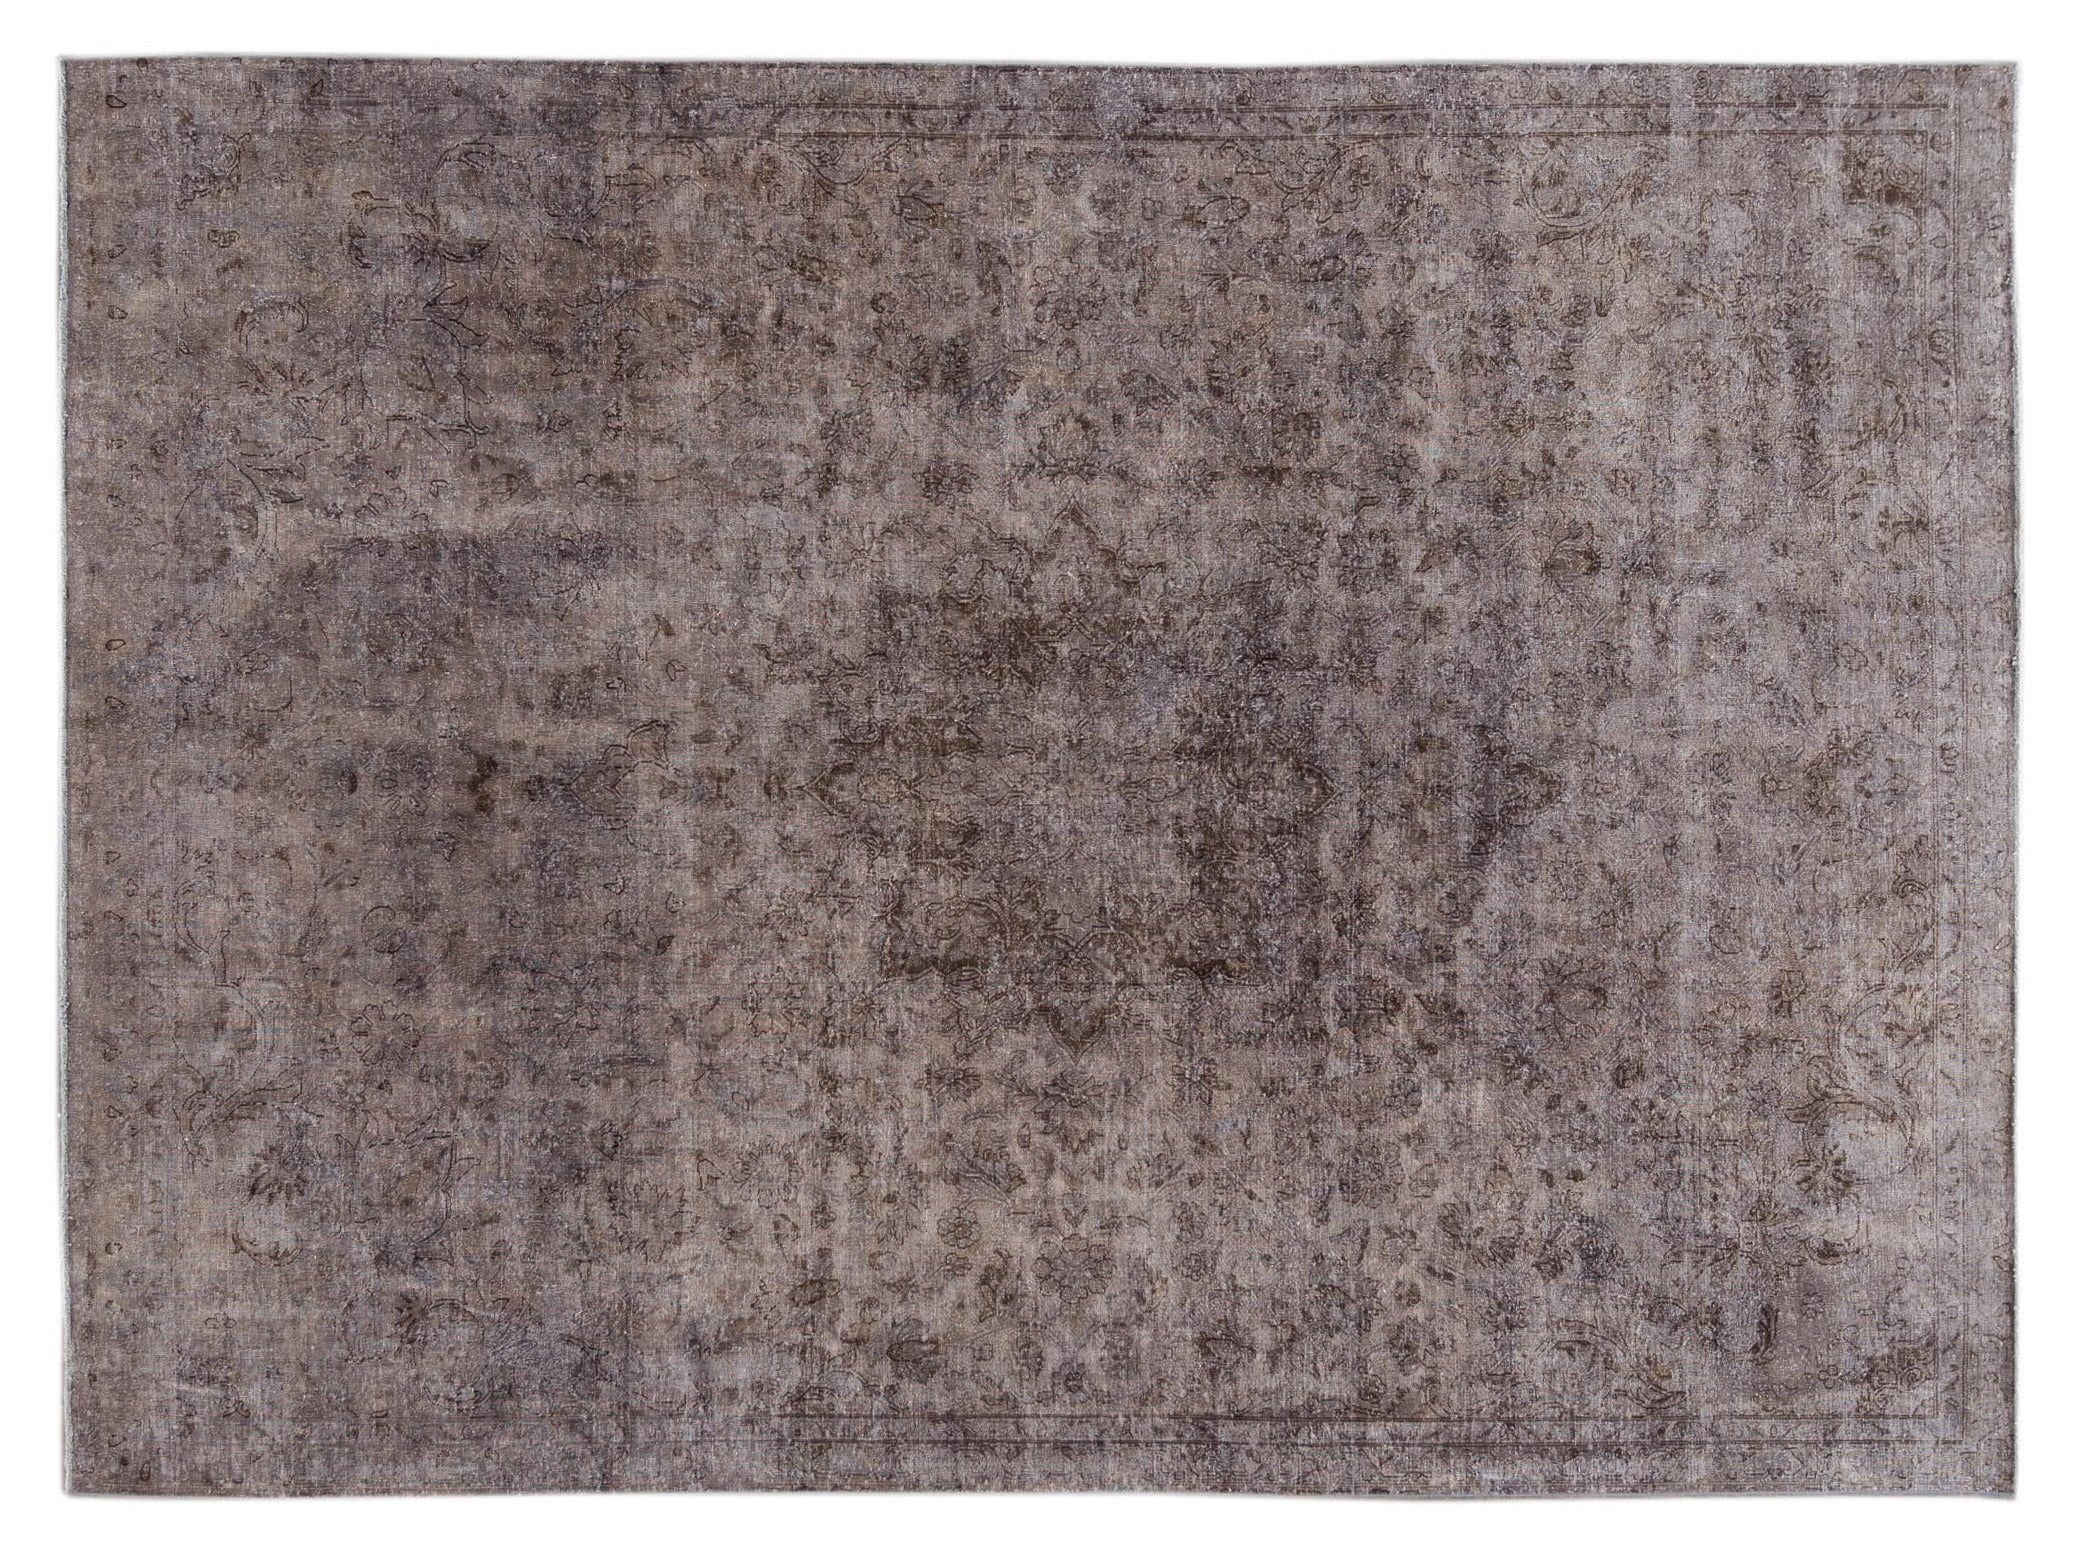 Mid 20th Century Vintage Distressed Wool Rug 8 X 10